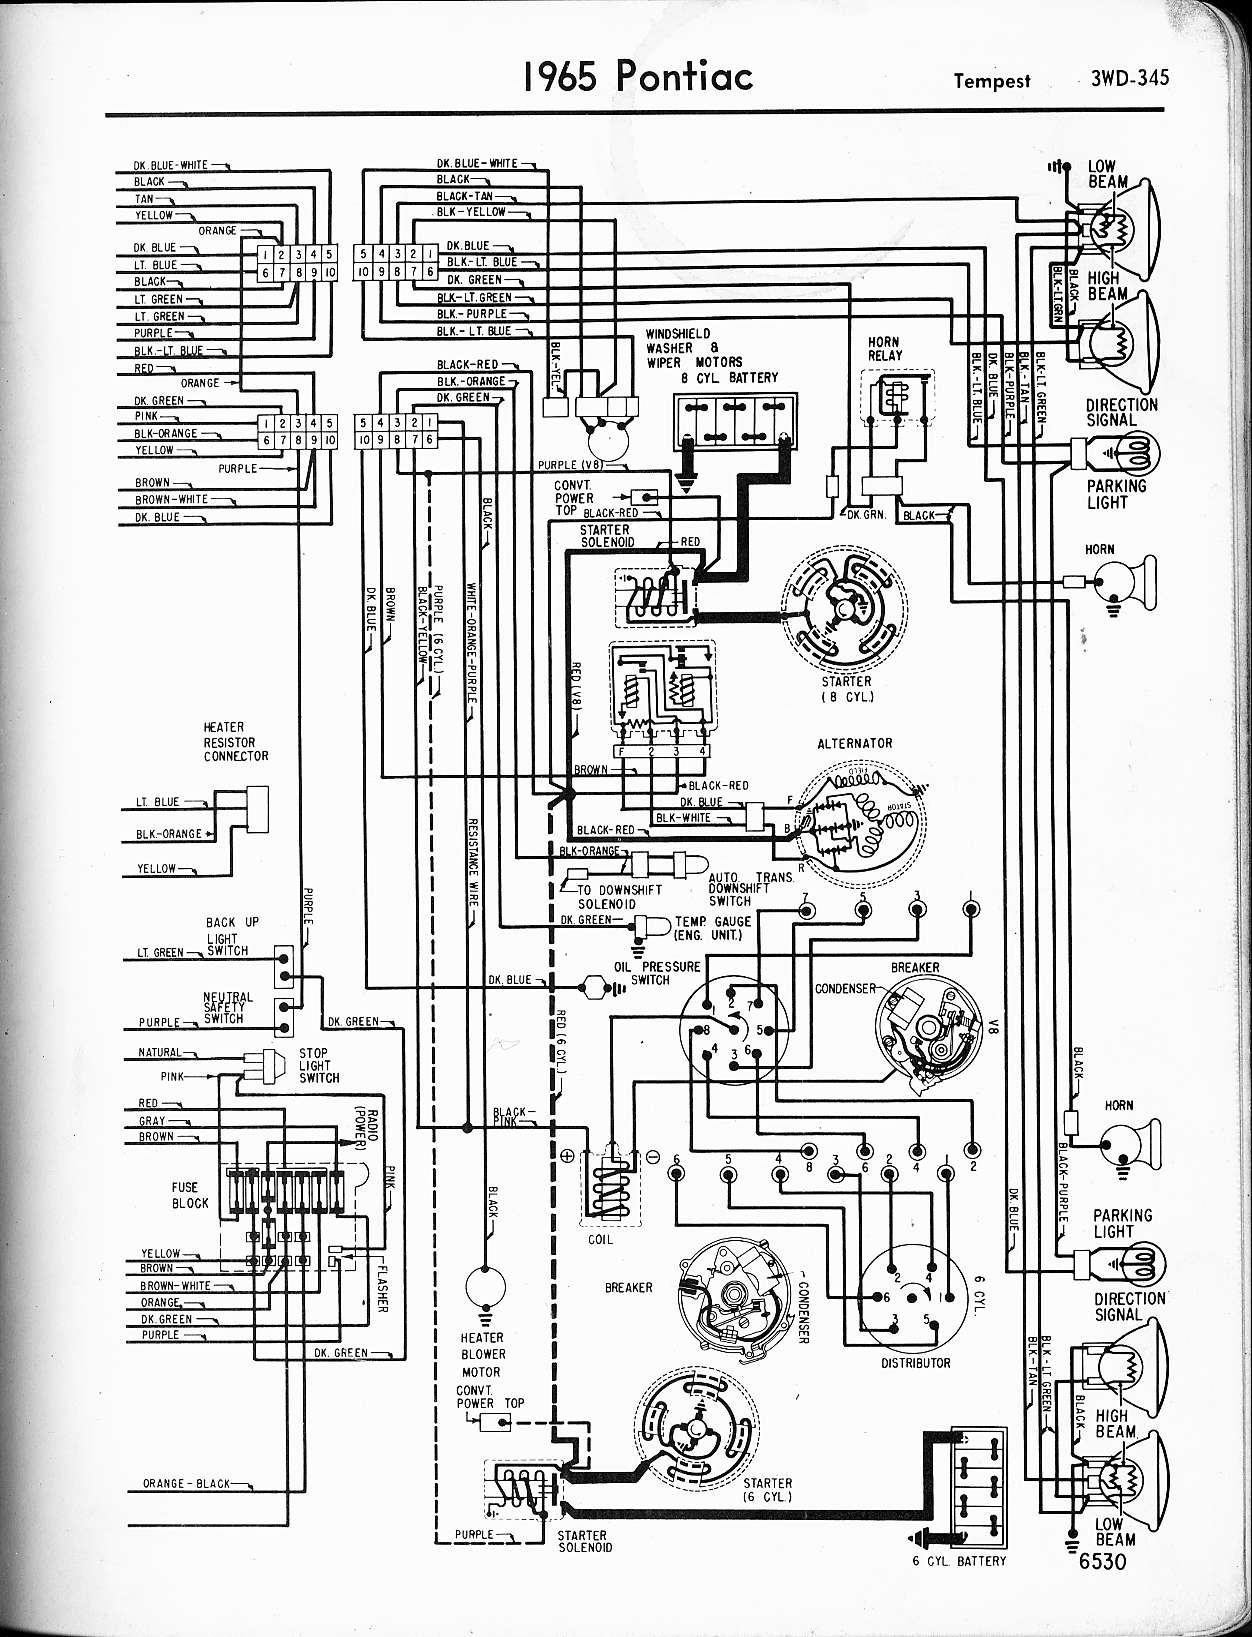 2004 pontiac gto fuel system diagram wiring schematic schema pontiac grand  am wiring diagram 1965 pontiac